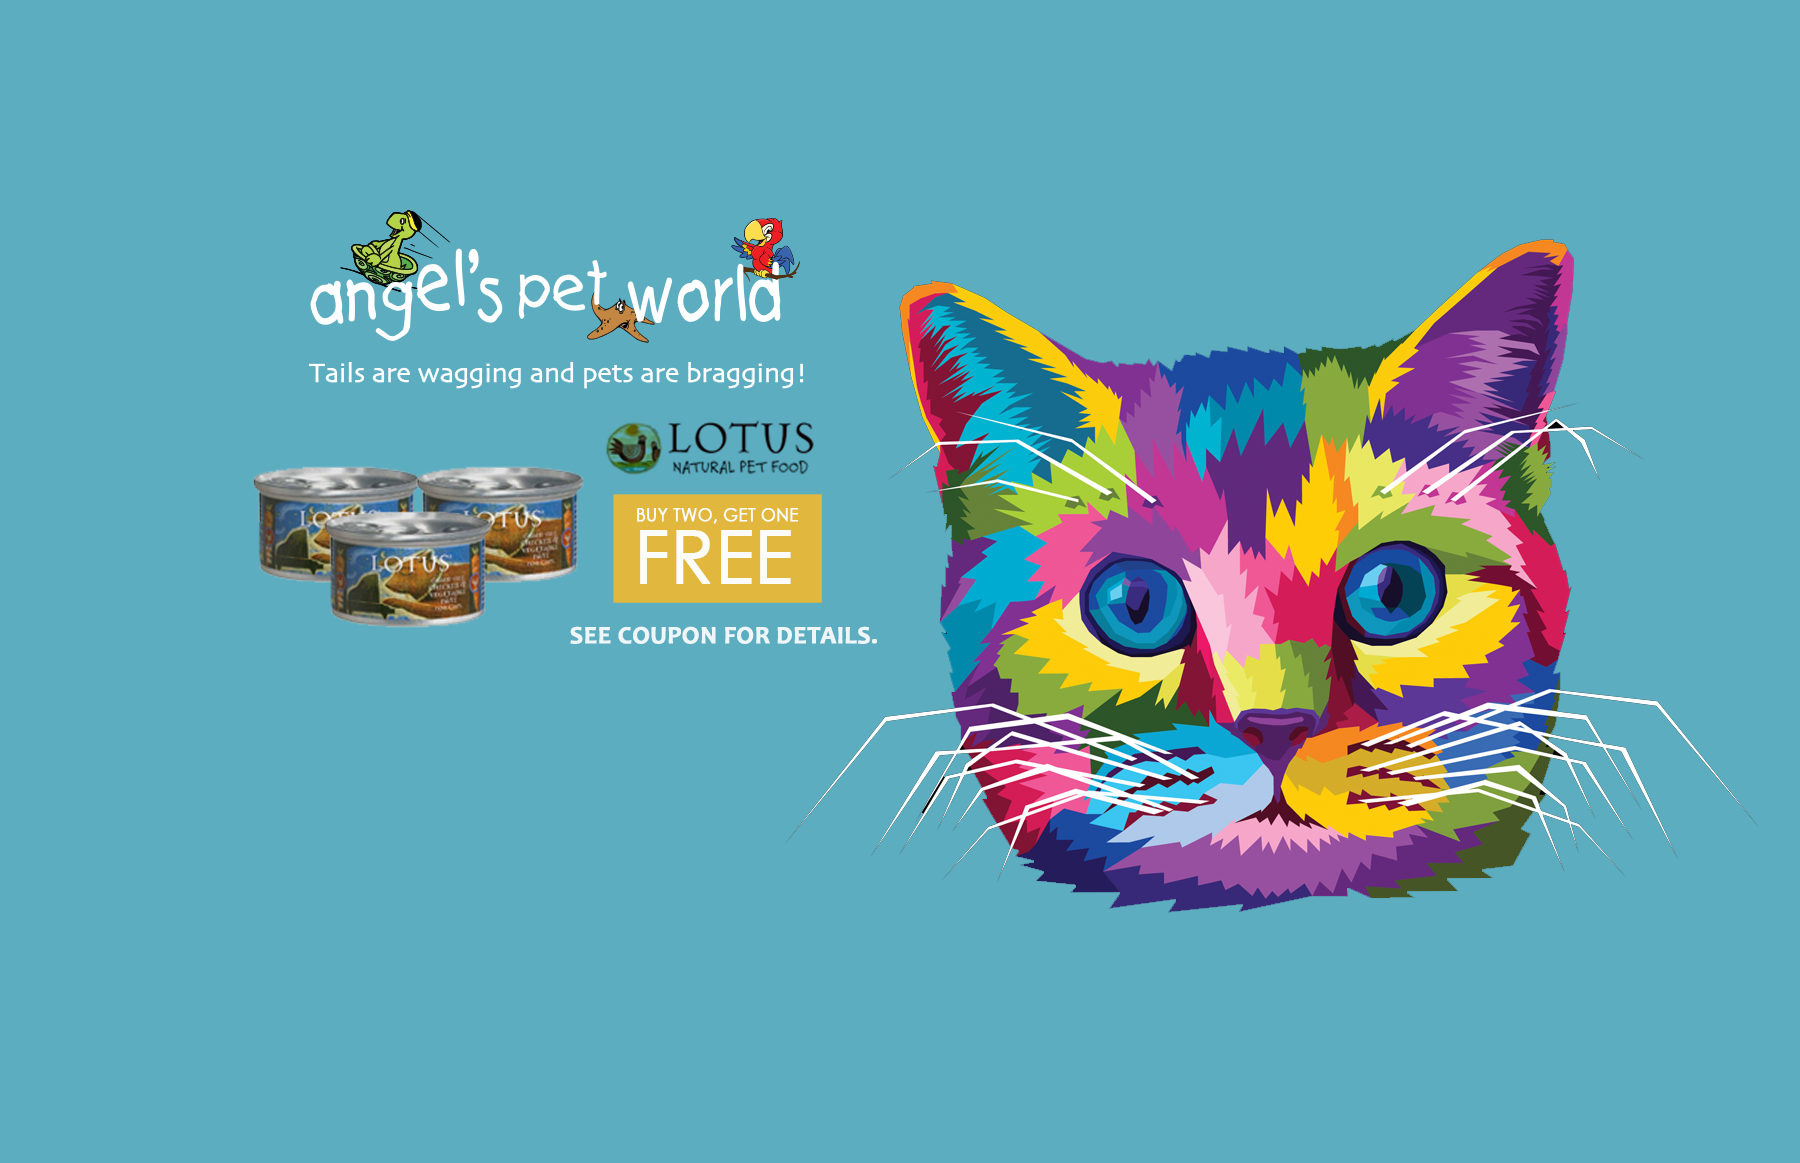 Lotus Cat Canned Food Angel S Pet World In Hudson And River Falls